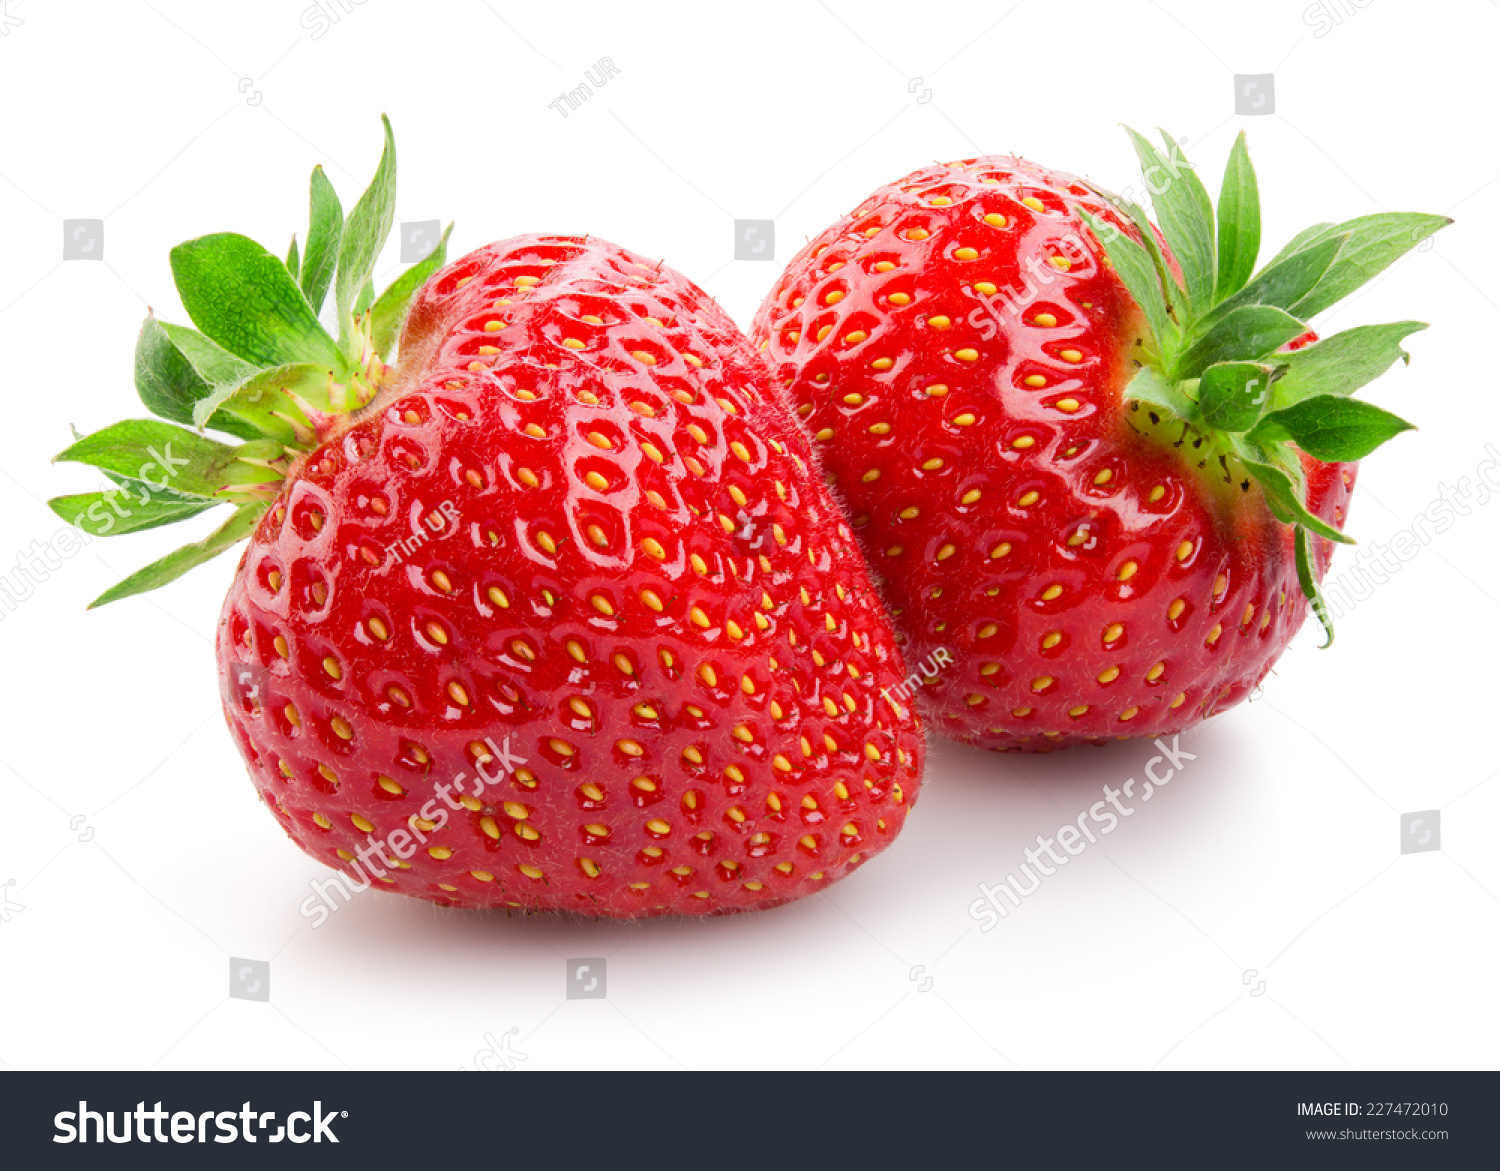 Two Strawberries Close Up On White Background Stock Photo ...